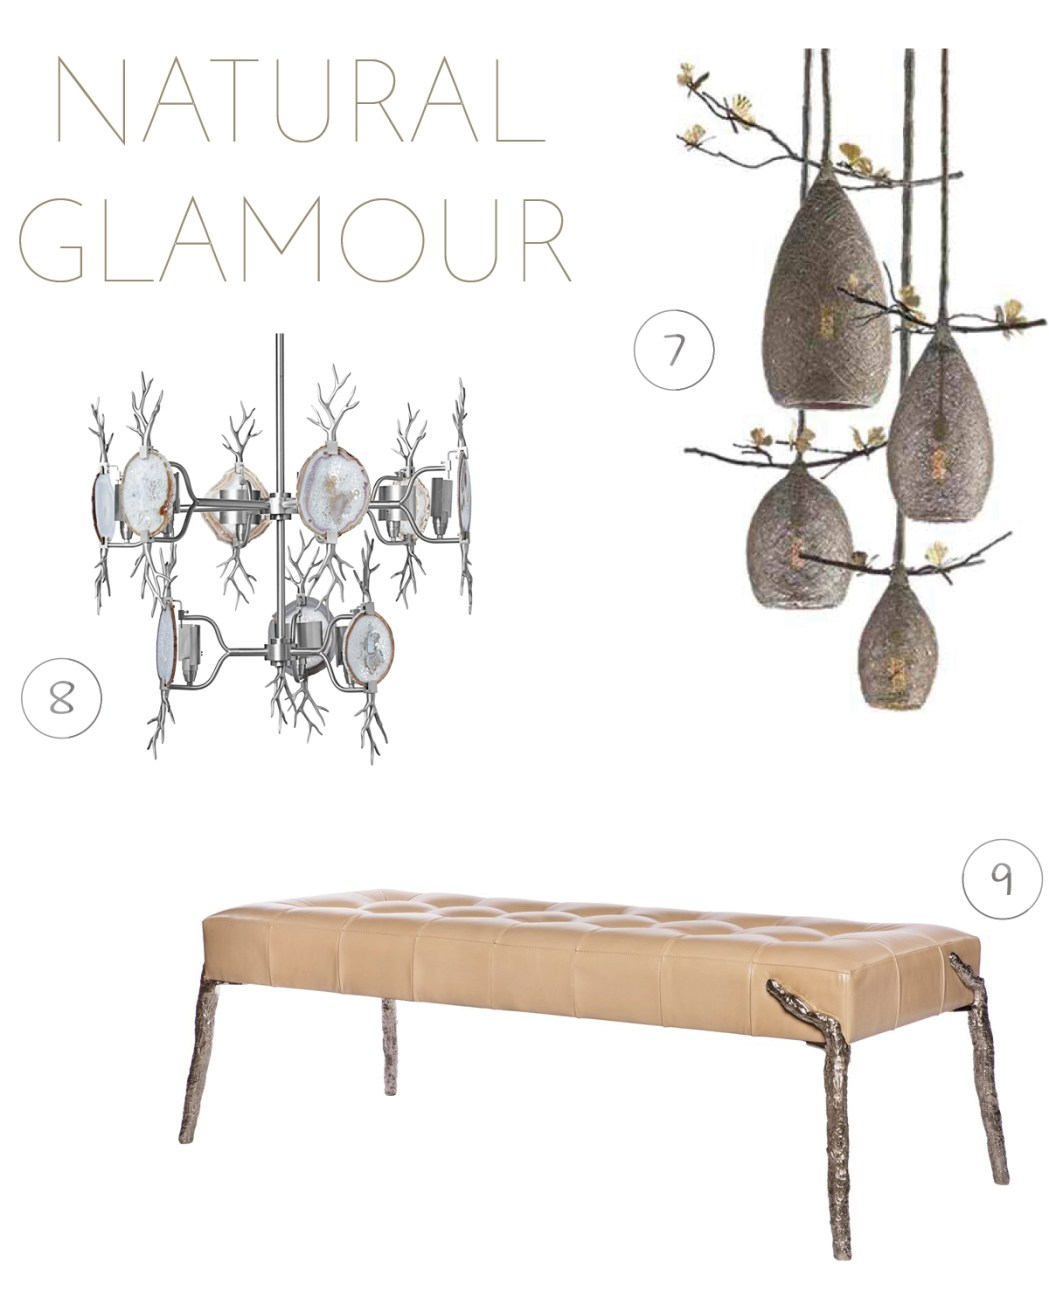 1. Cocoon Pendant Lights by Michael Aram | 2. Branch Agate Chandelier by Emporium Home | 3. Branch Bench by Emporium Home